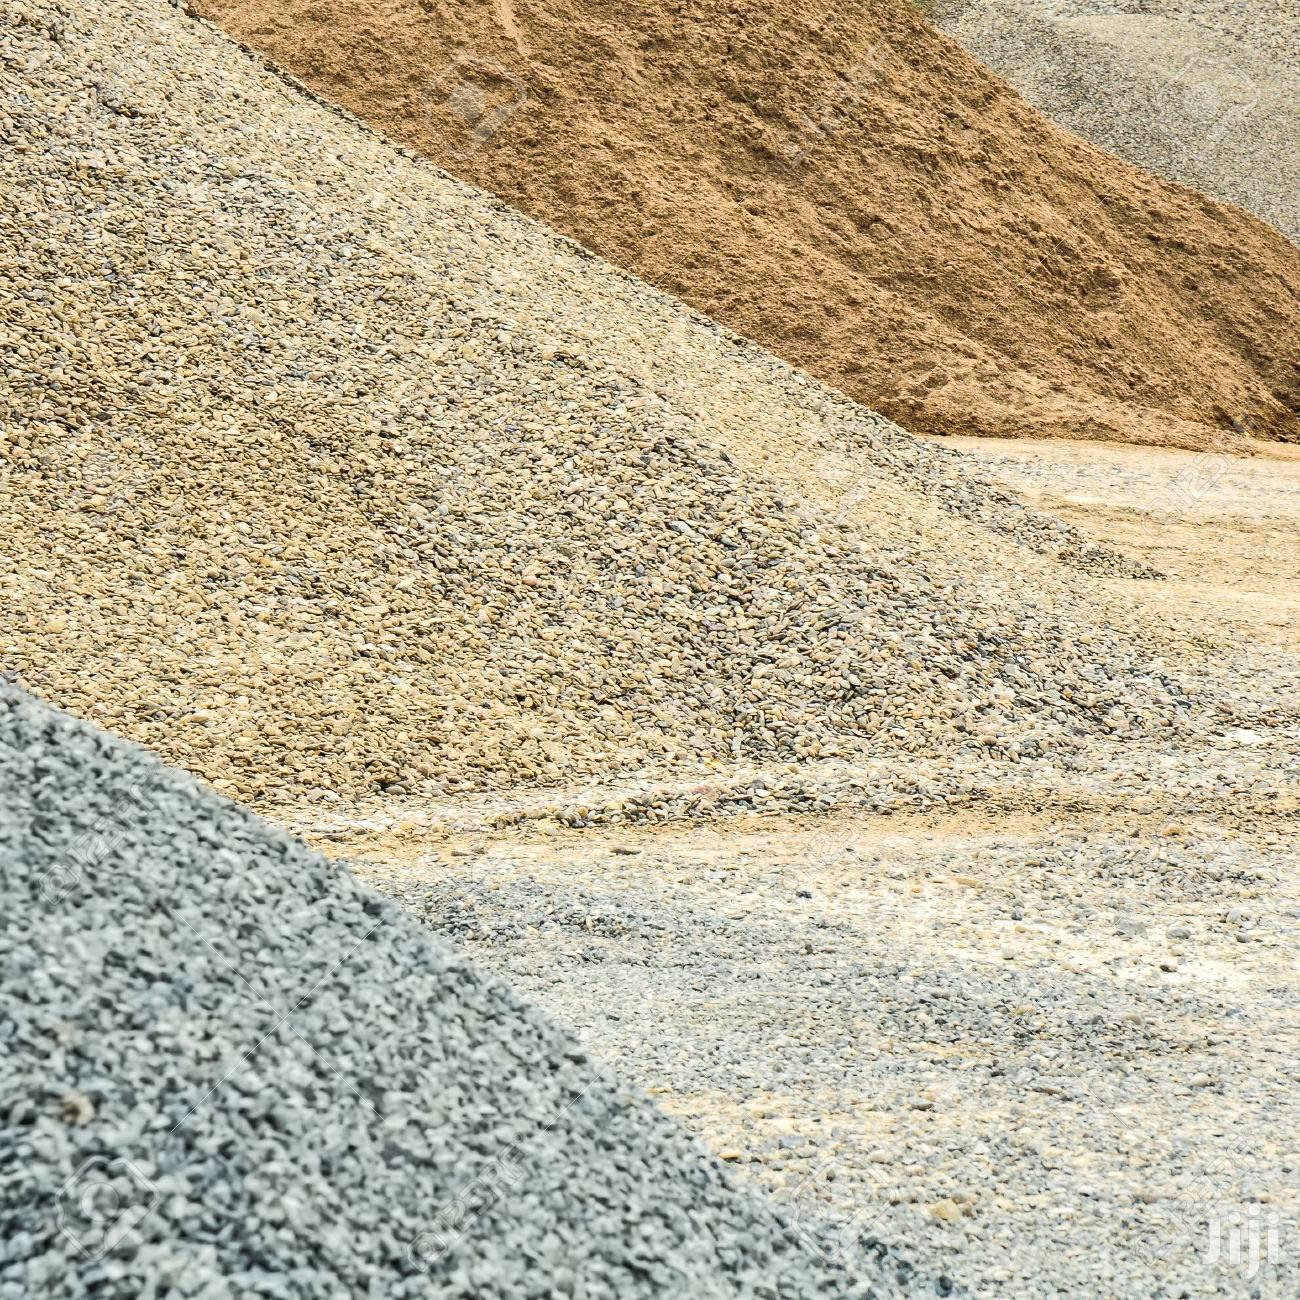 Quality Sand,Stones,Chippings,Blocks And Building Materials For Sale. | Building & Trades Services for sale in Accra Metropolitan, Greater Accra, Ghana